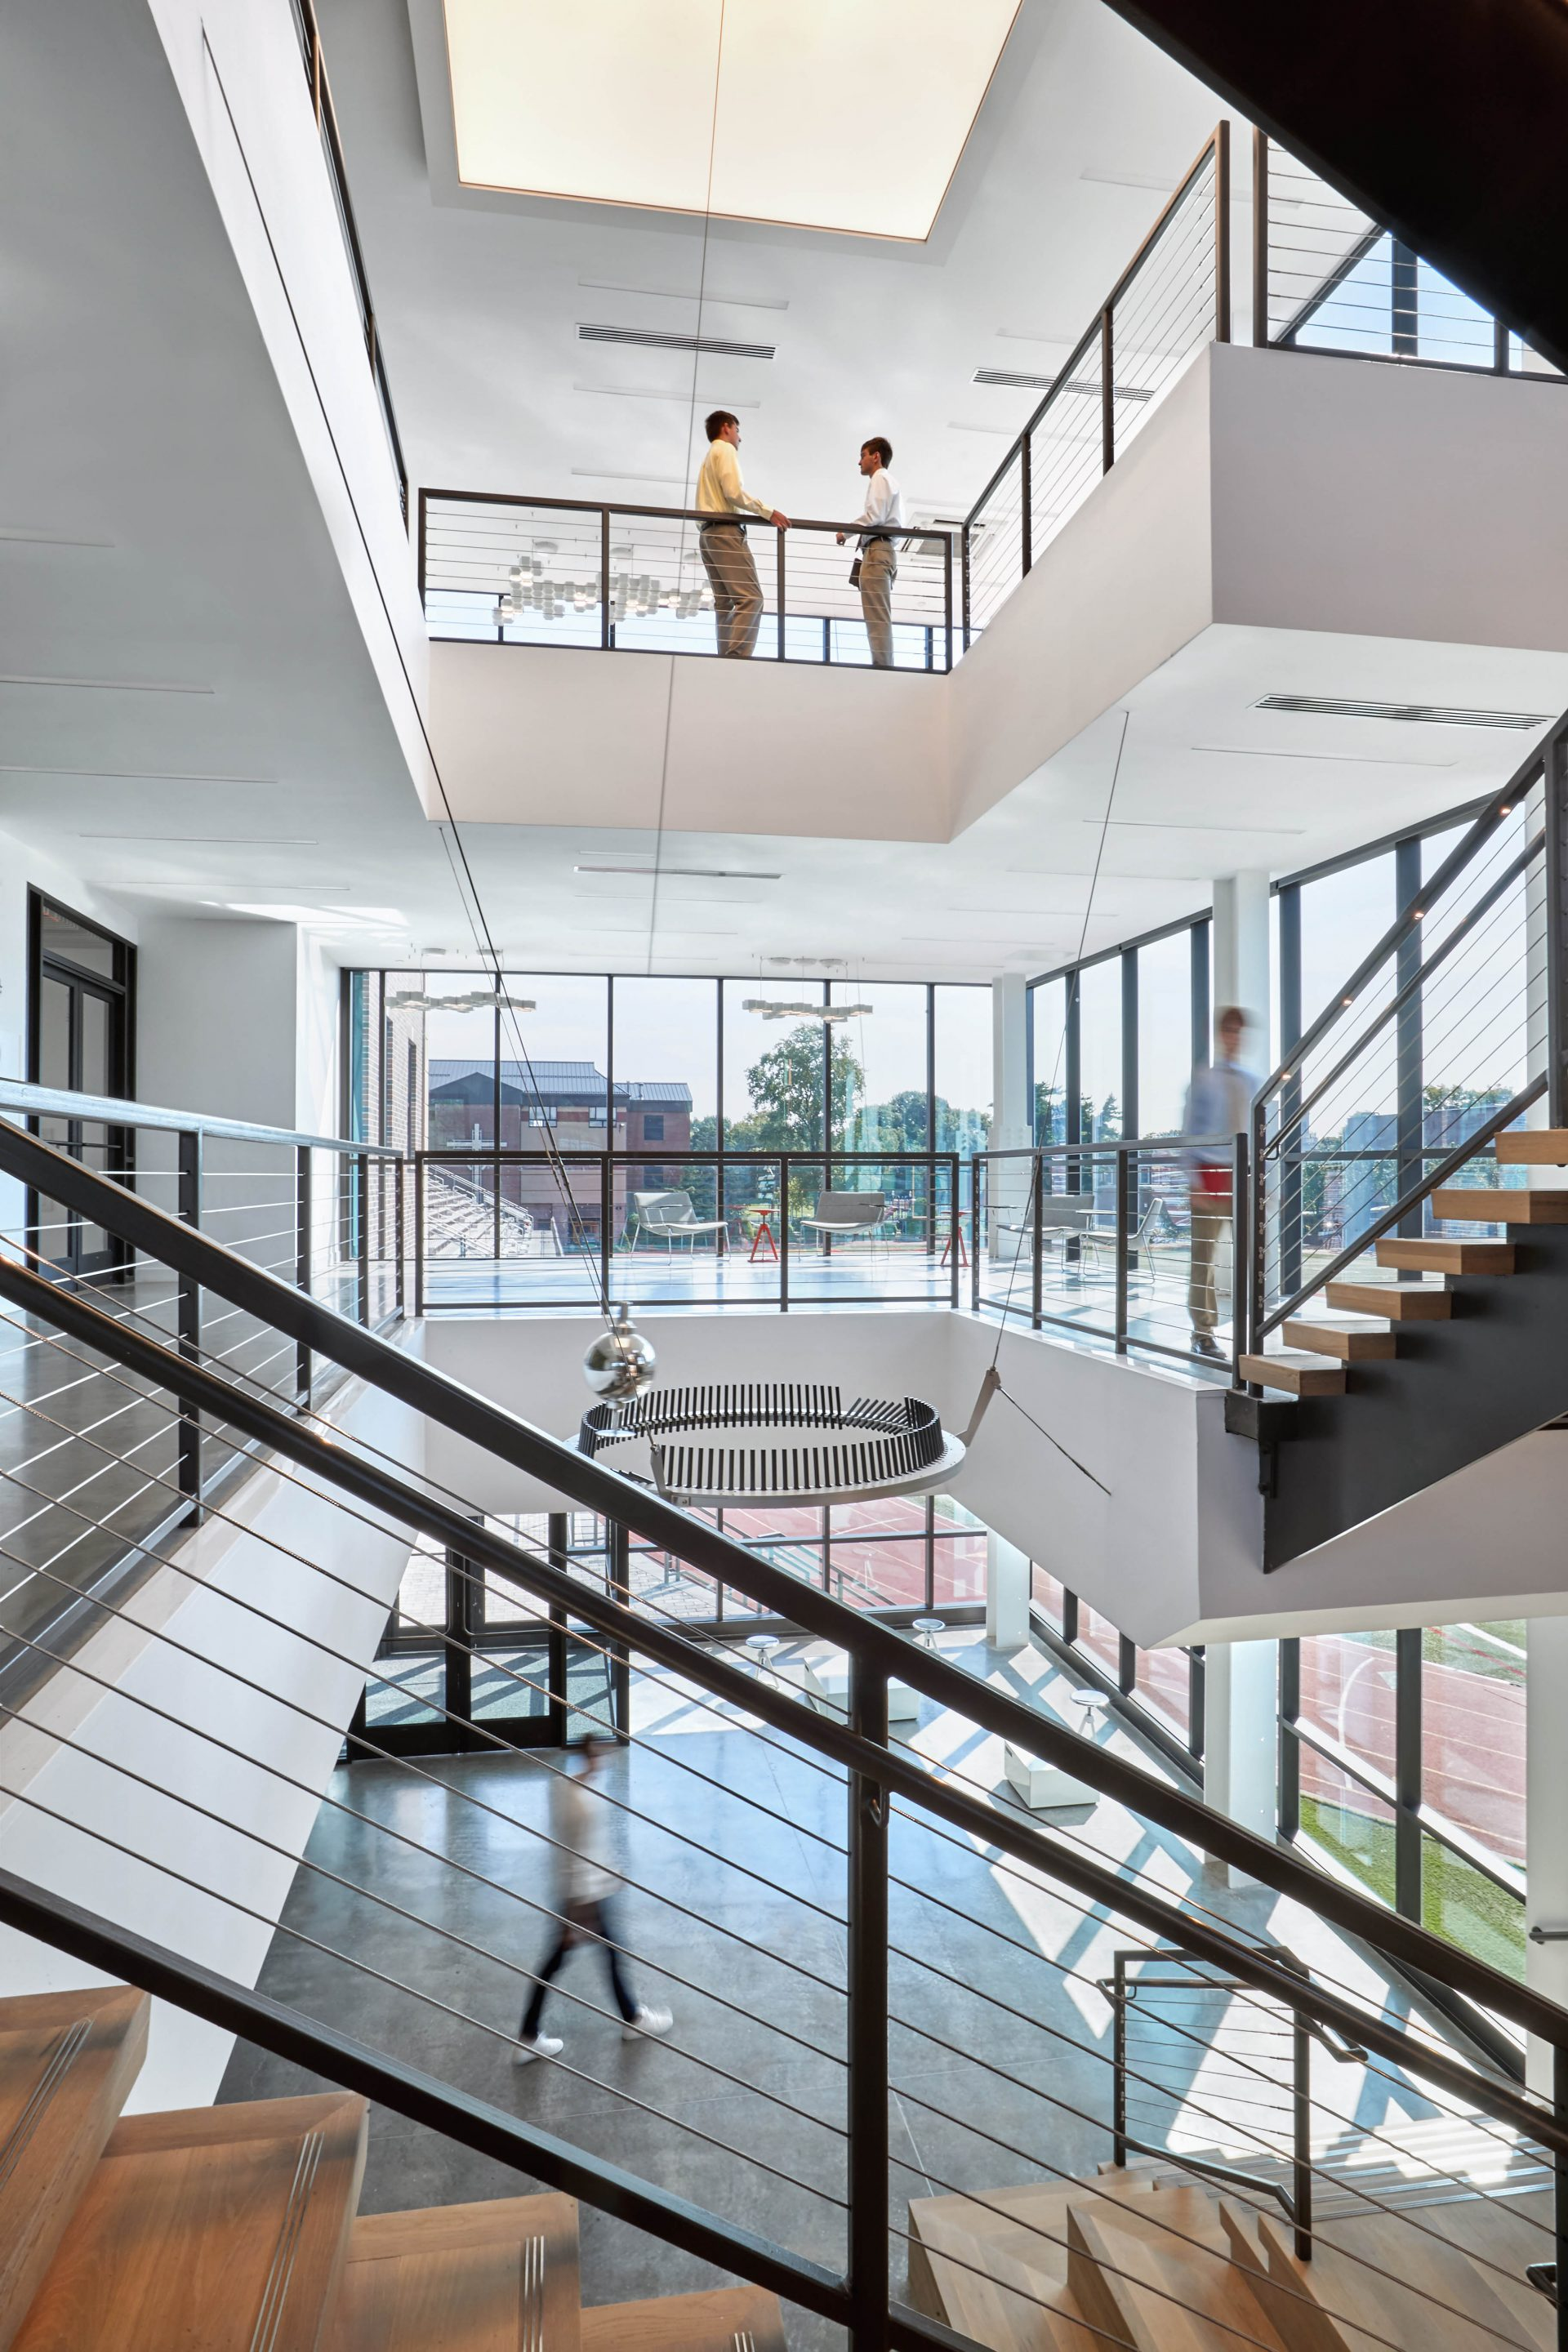 View across the three-story atrium at the new Dolan Family Science Center